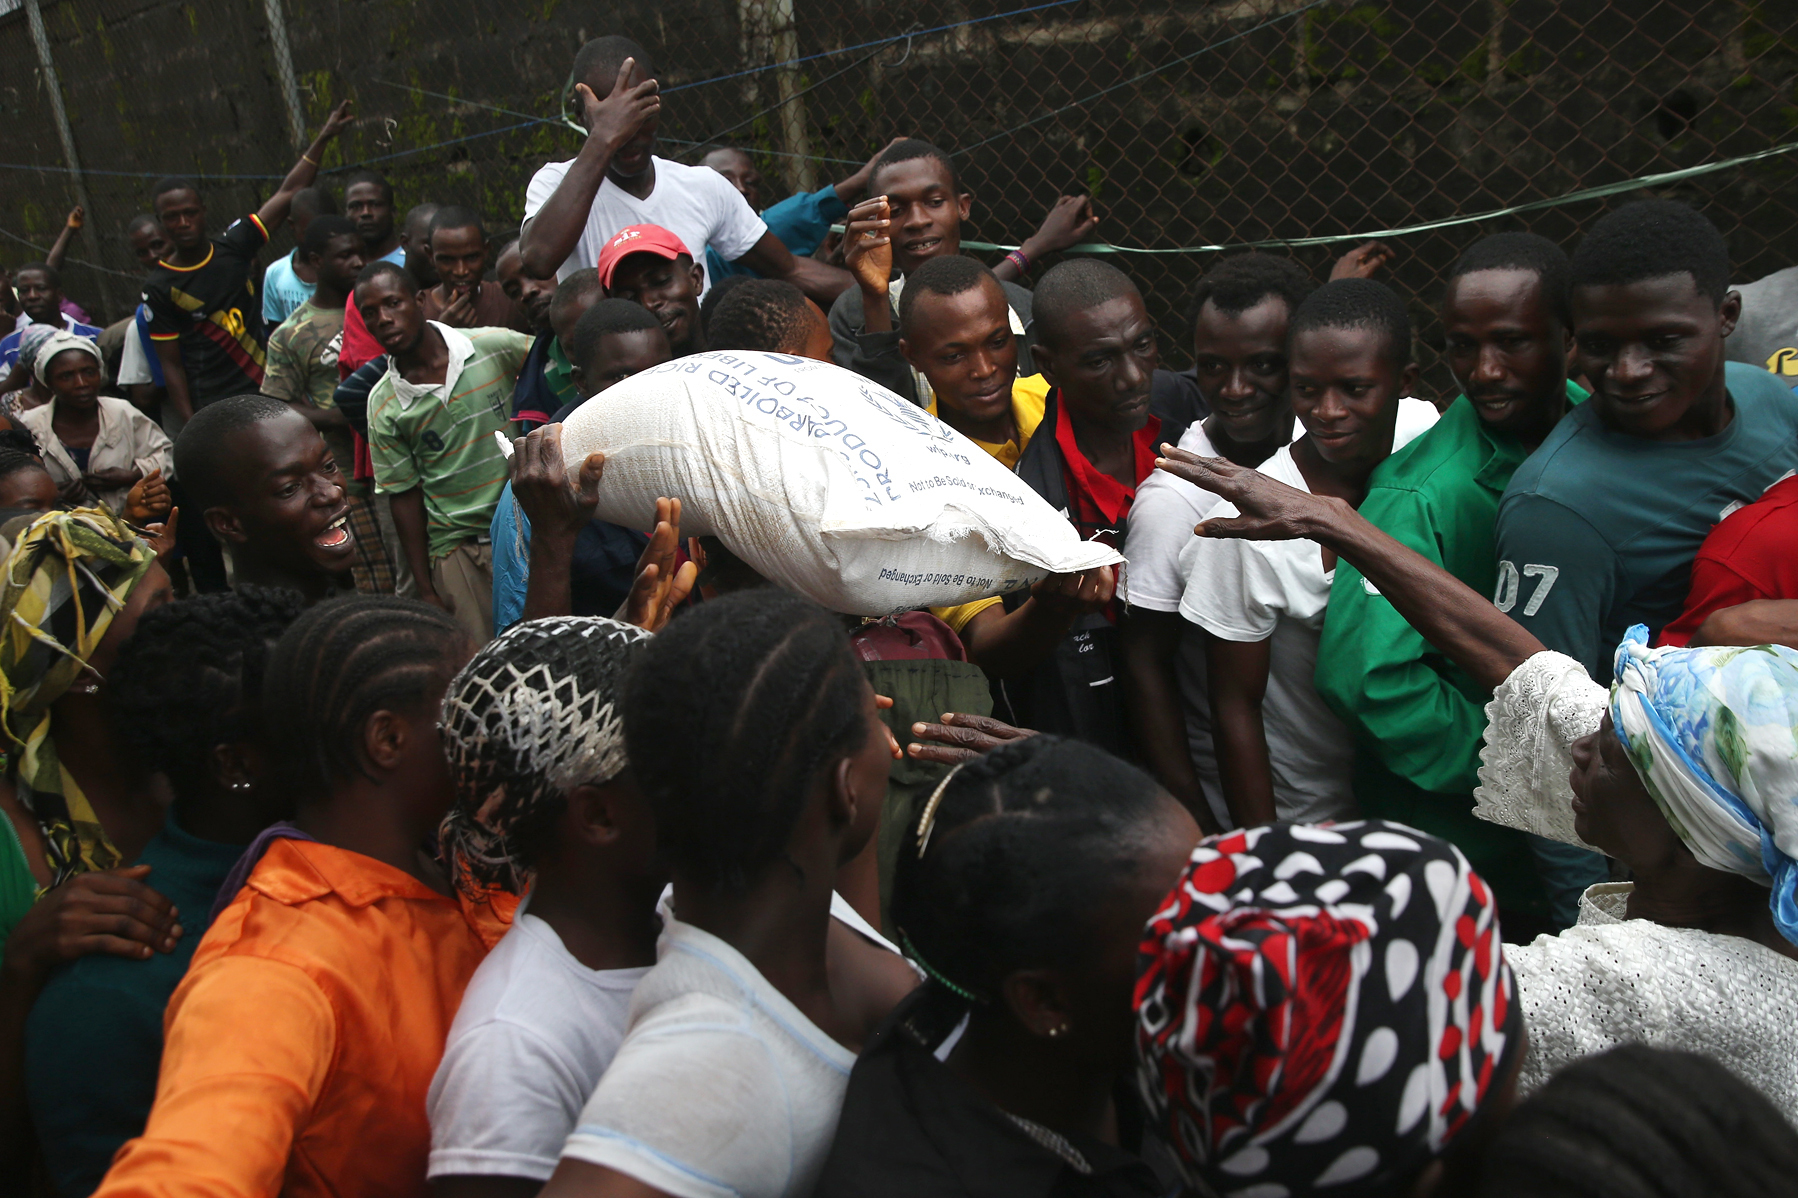 The Liberian government delivered bags of rice, beans and cooking oil to residents of the West Point slum in Monrovia. The community has been quarantined because of the Ebola outbreak in the area. Photo: John Moore/Getty Images